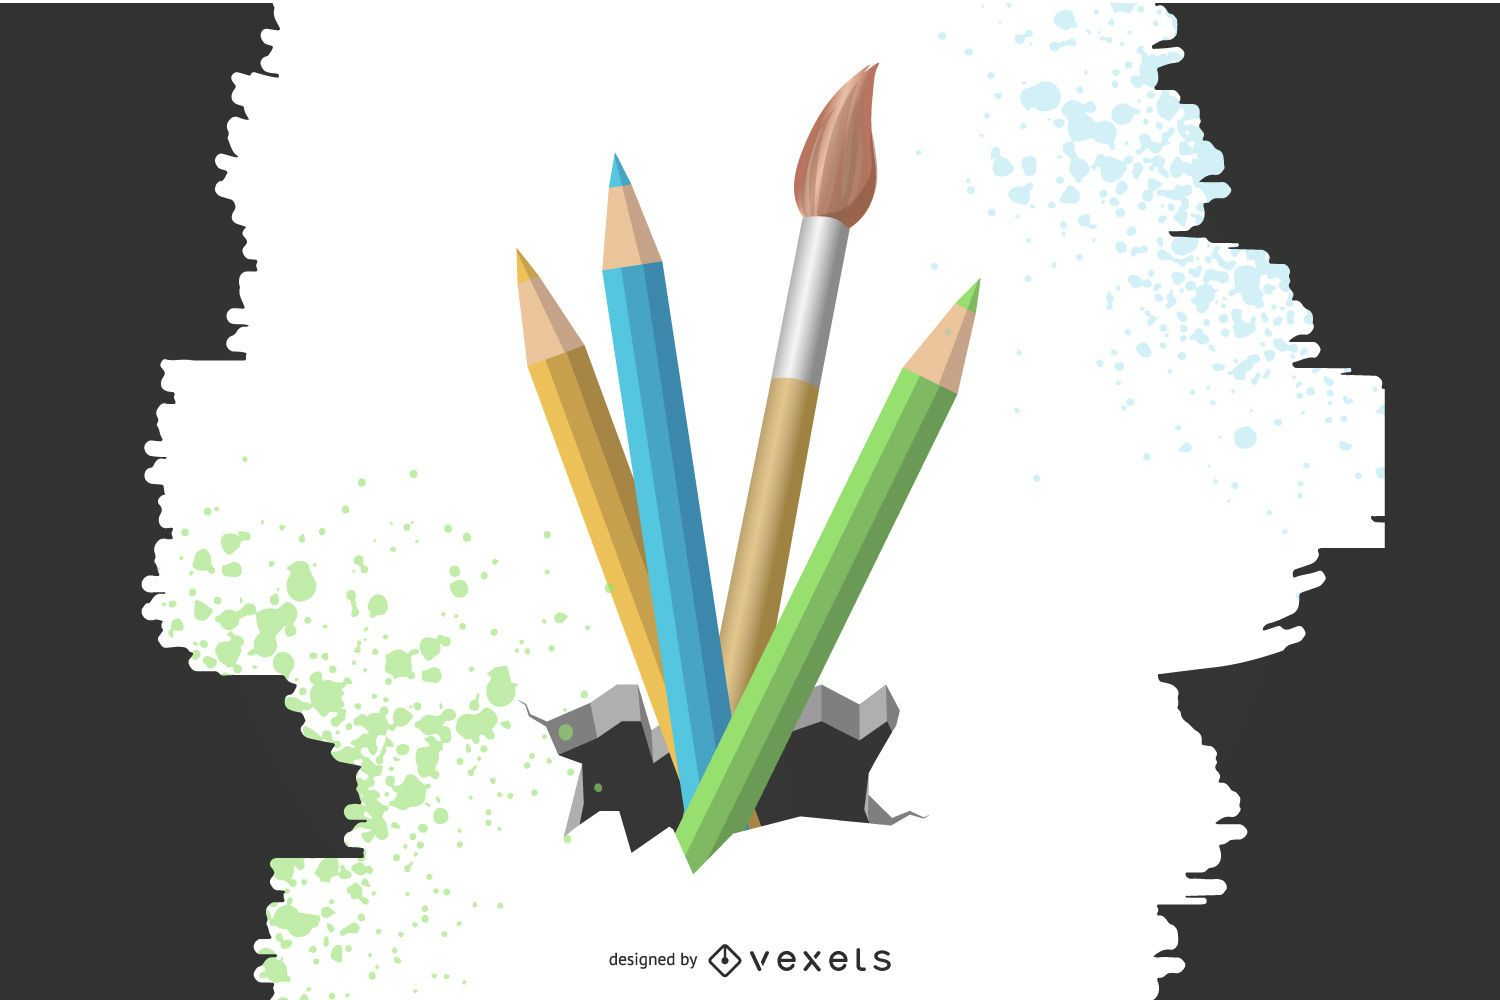 Pencils & Brush Coming out of the Ground